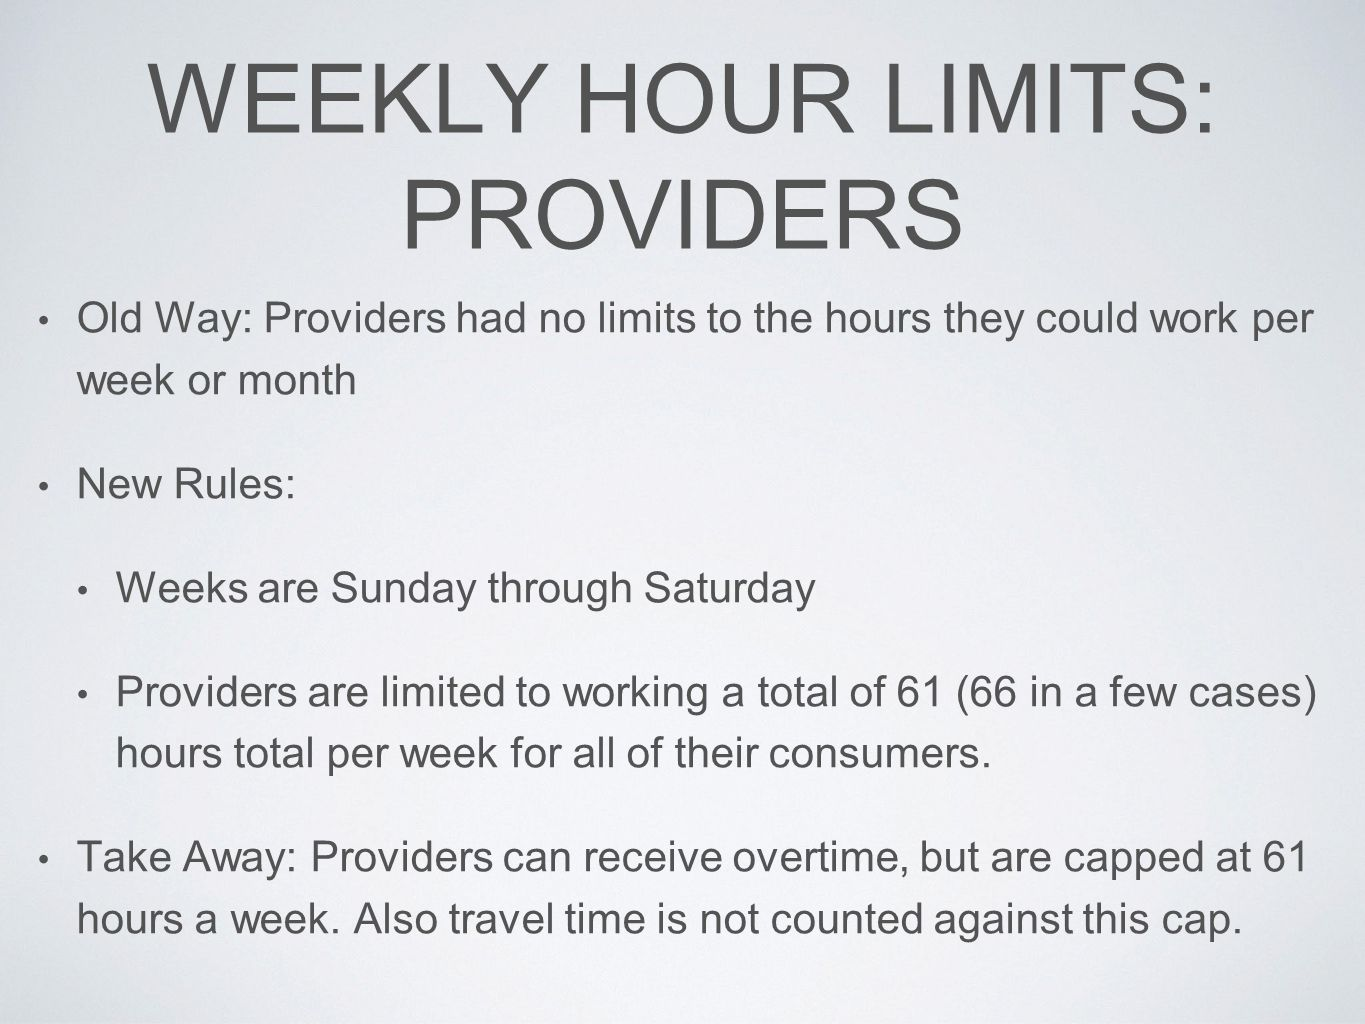 WEEKLY HOUR LIMITS: PROVIDERS Old Way: Providers had no limits to the hours they could work per week or month New Rules: Weeks are Sunday through Satu